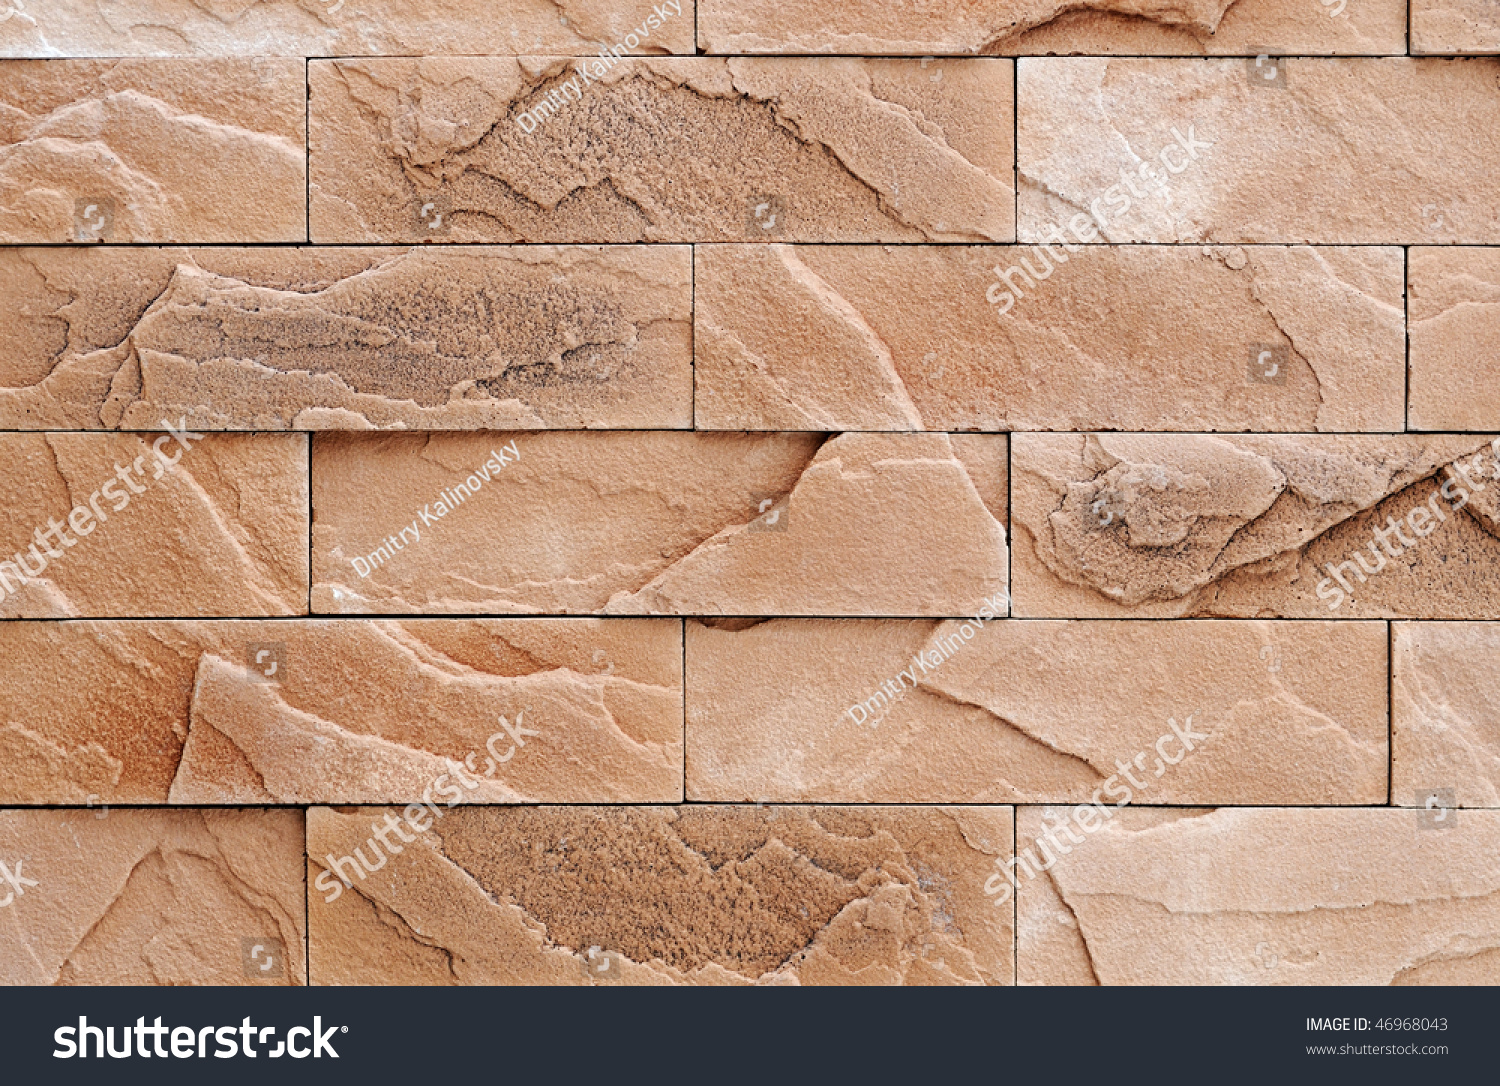 Brown brick stone exterior and interior decoration for Exterior wall construction materials